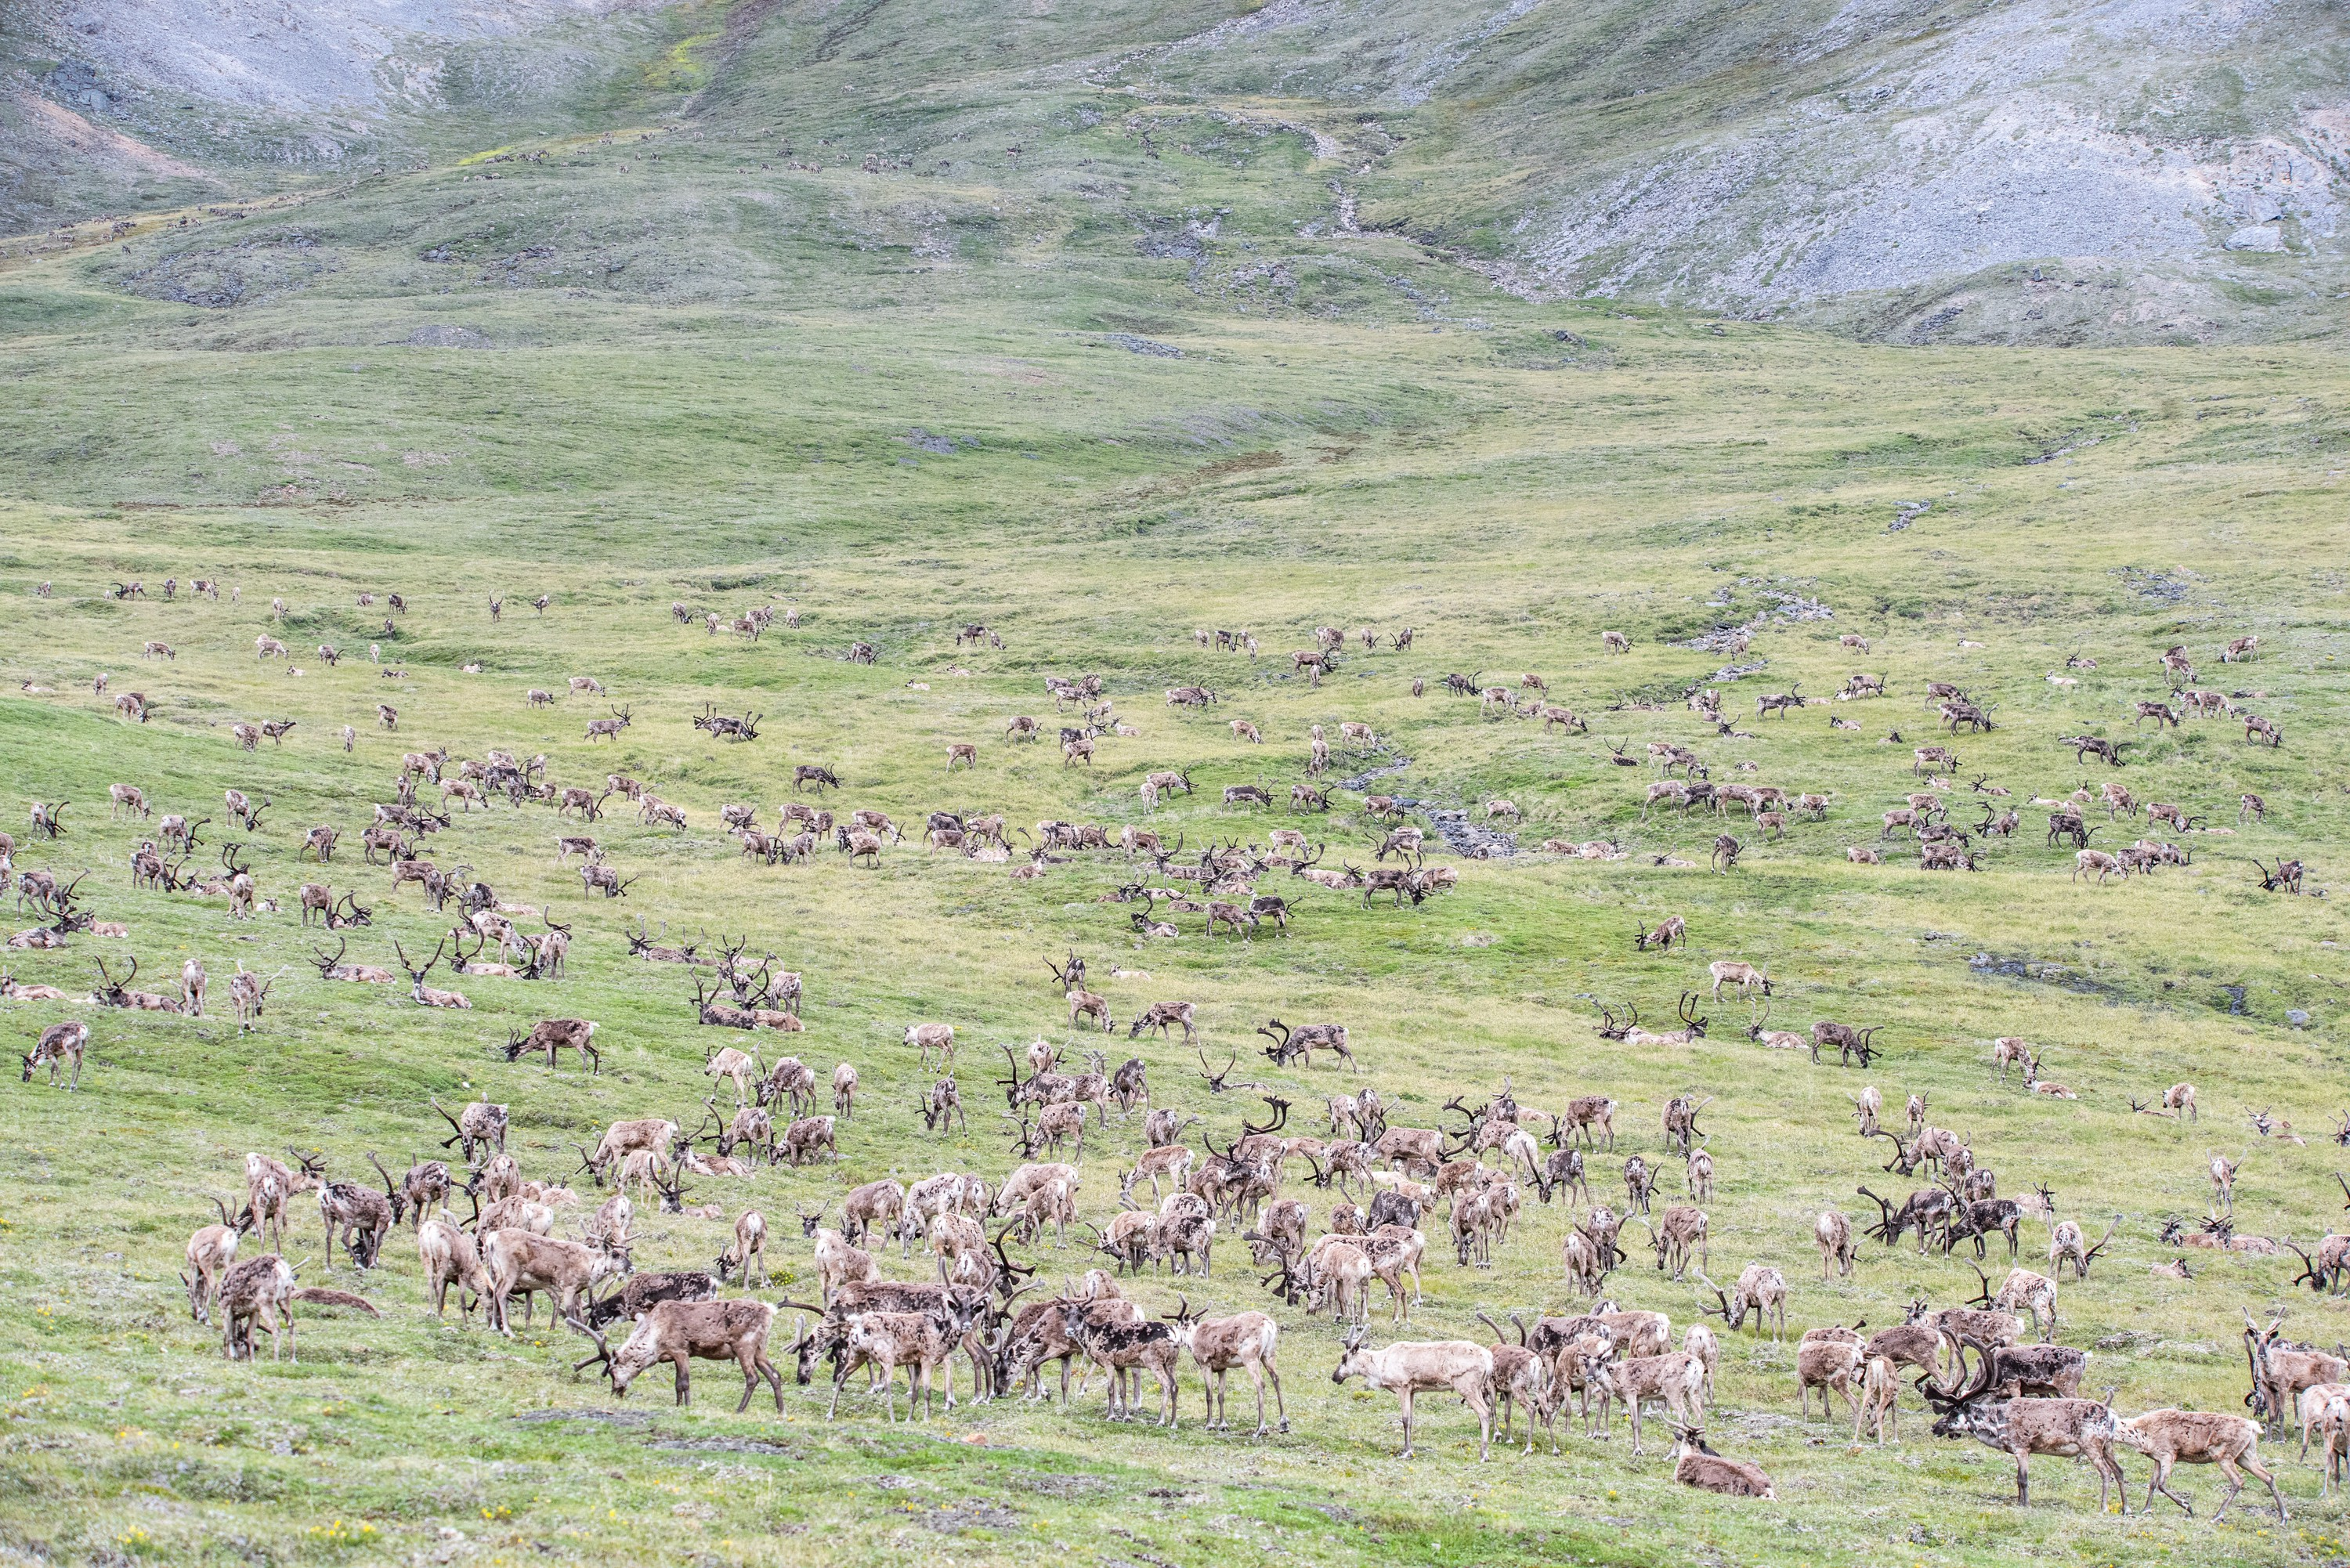 A herd of caribou graze on green tundra.